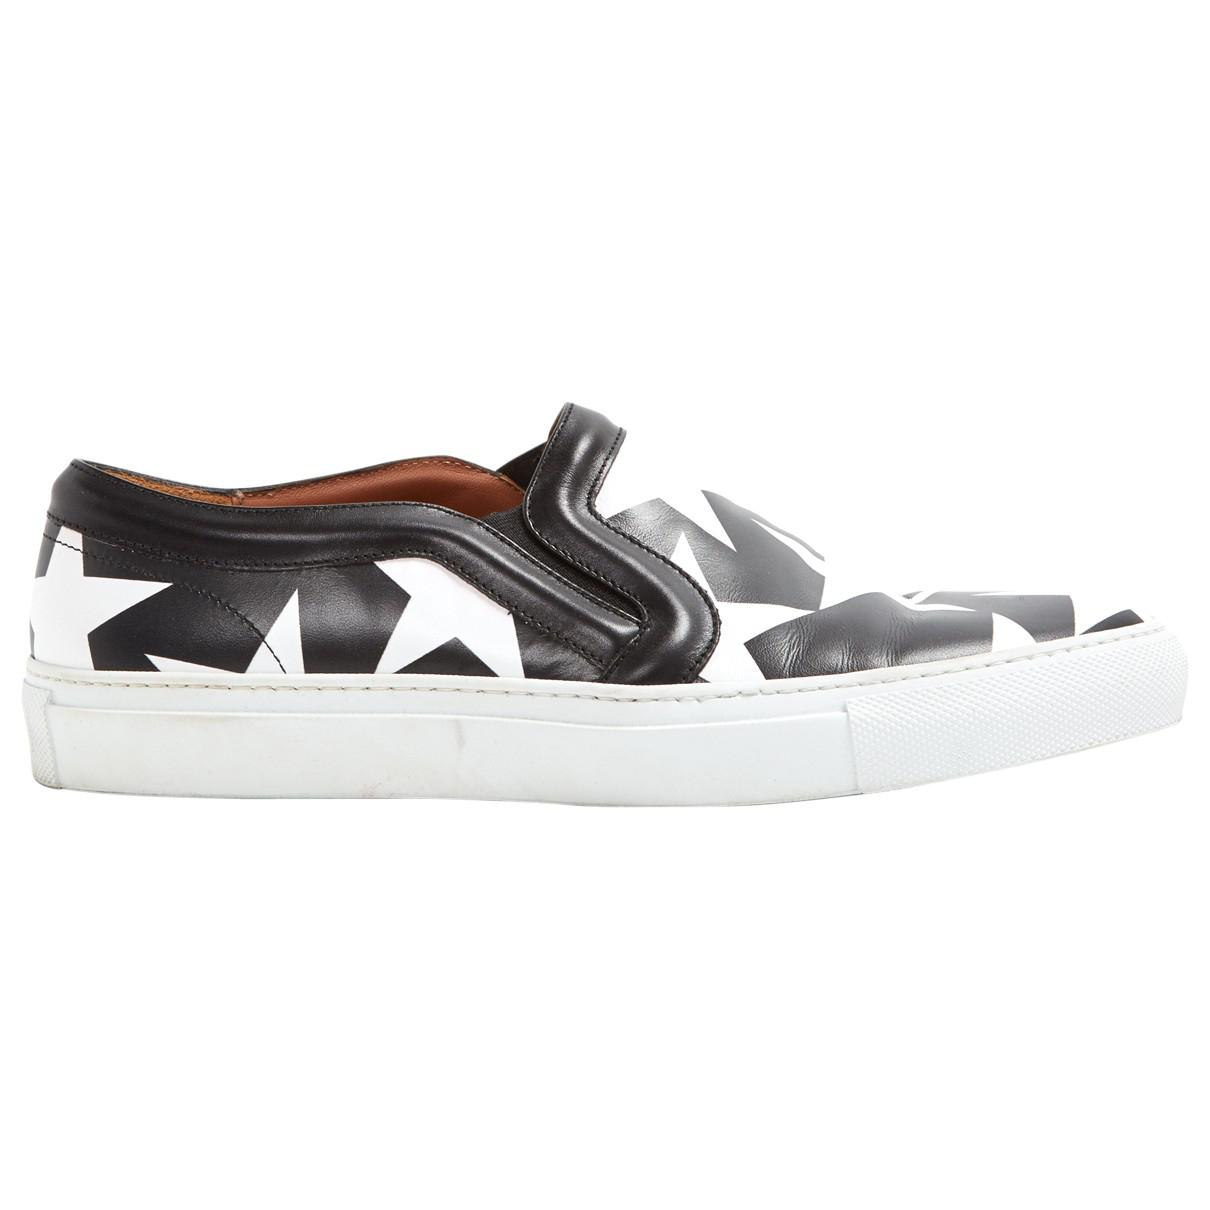 Pre-owned - Flats Givenchy vPbx7